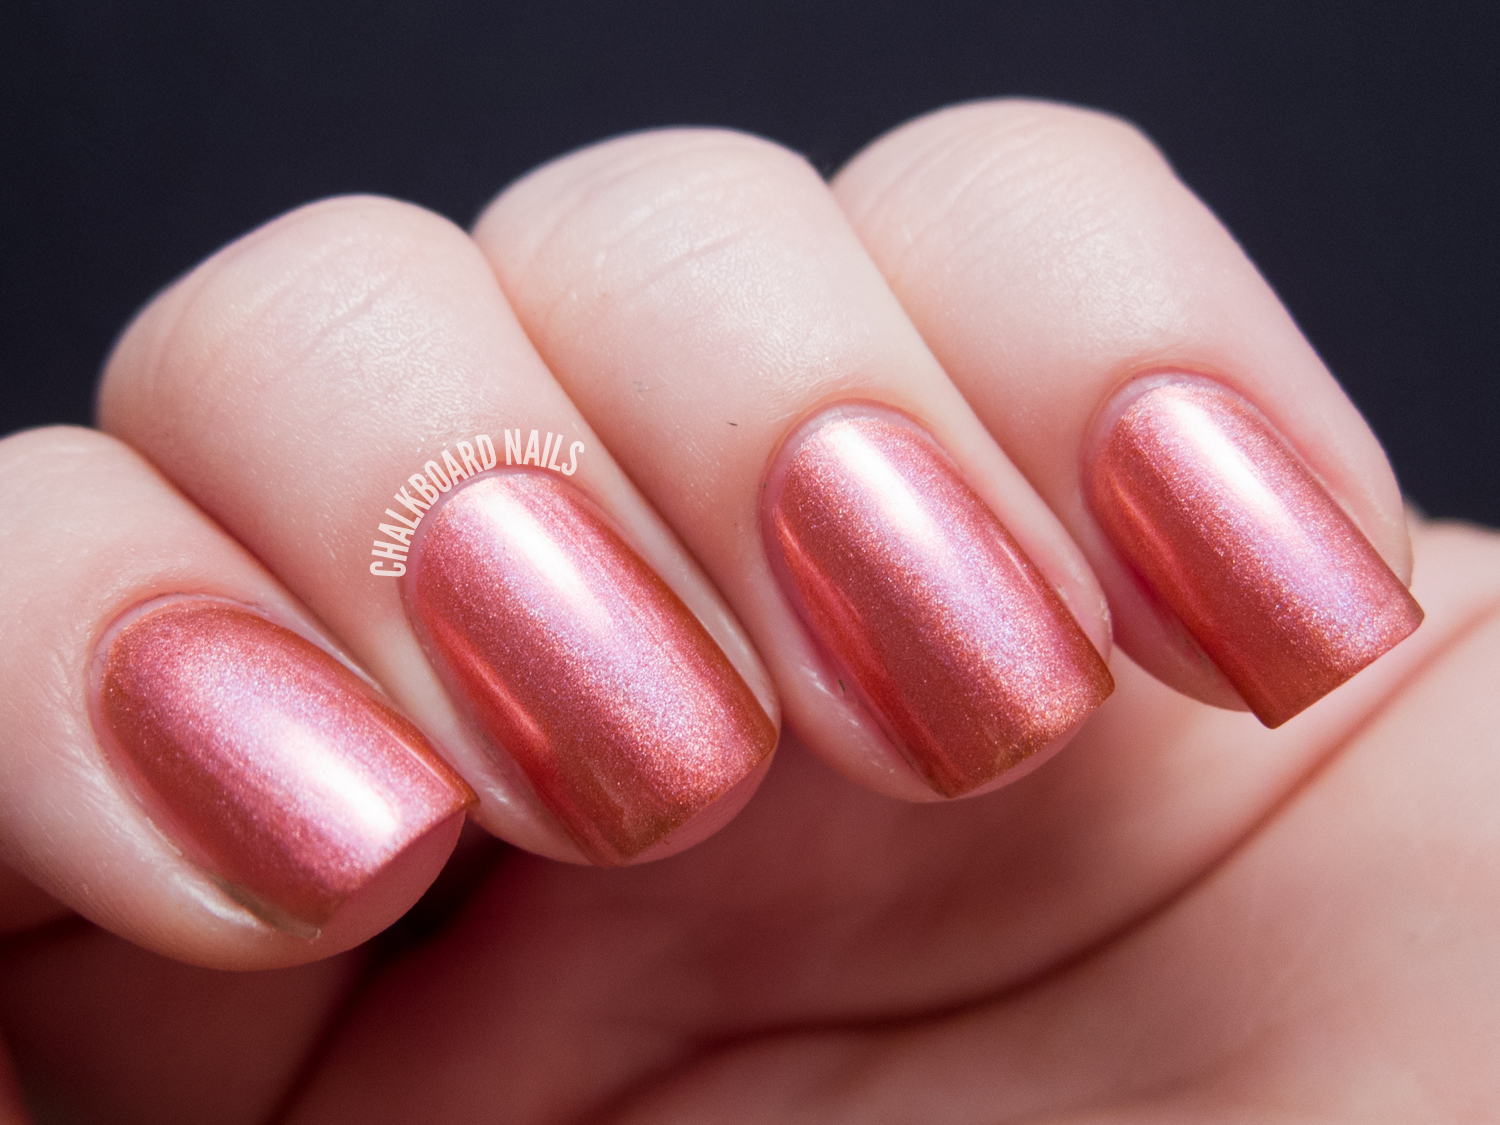 China Glaze Hologlam Collection Swatches And Review Chalkboard Nails Nail Art Blog